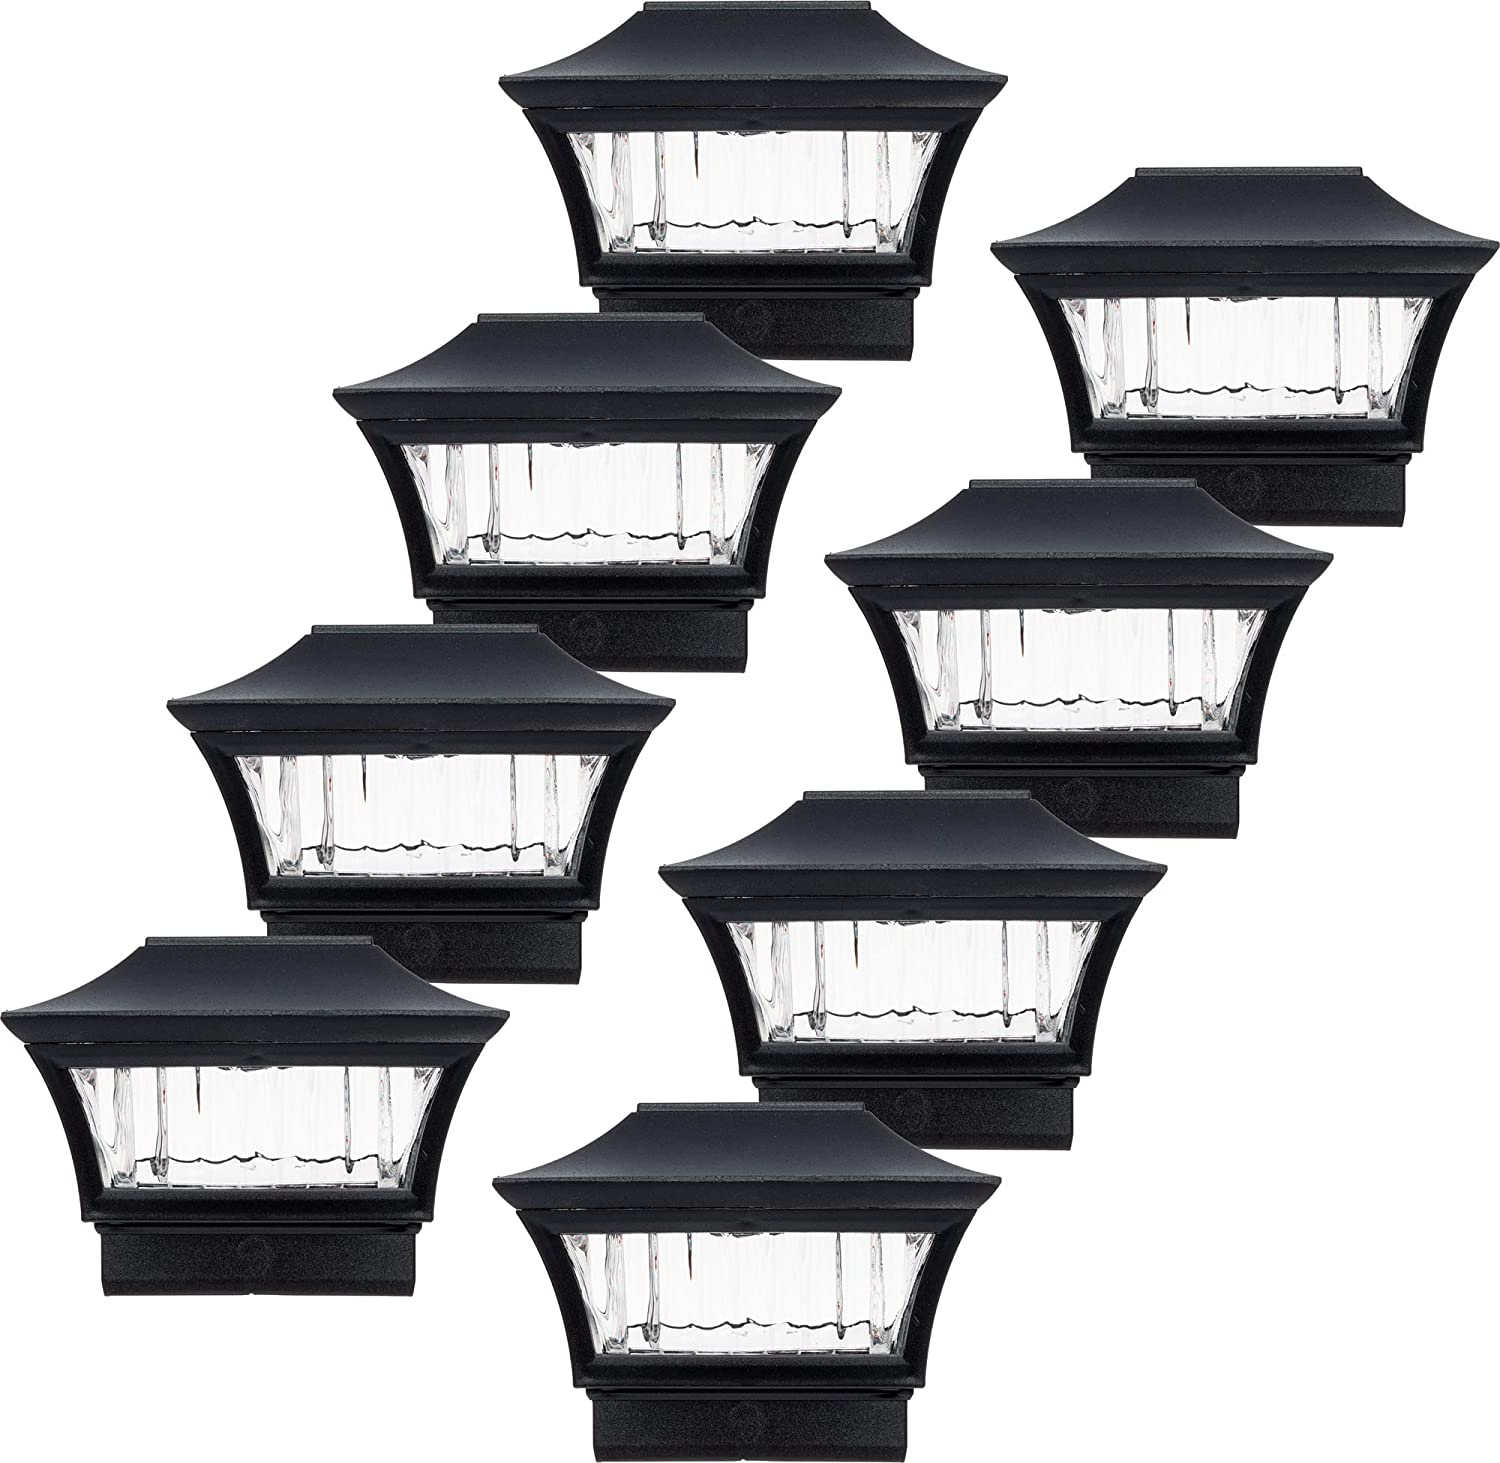 GreenLighting Black Aluminum 4x4 Solar Post Cap Light - Wood/PVC Posts (8 Pack)